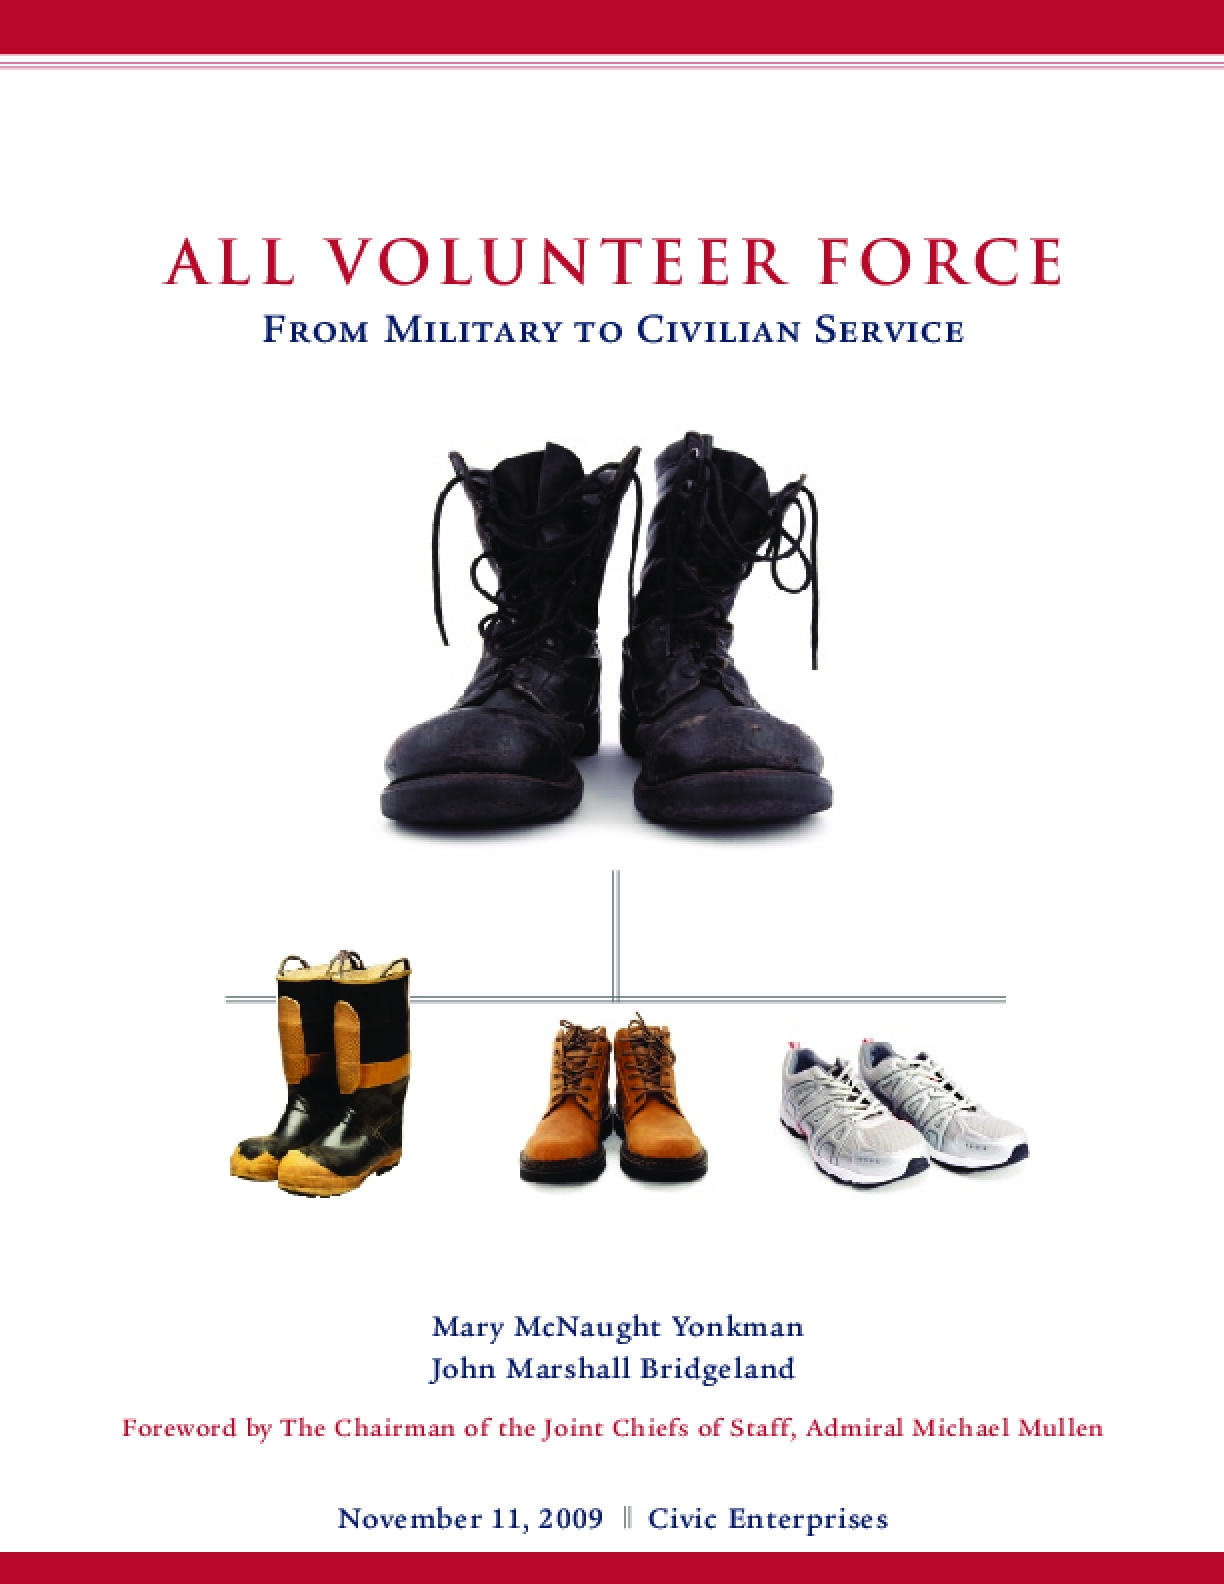 All Volunteer Force: From Military to Civilian Service